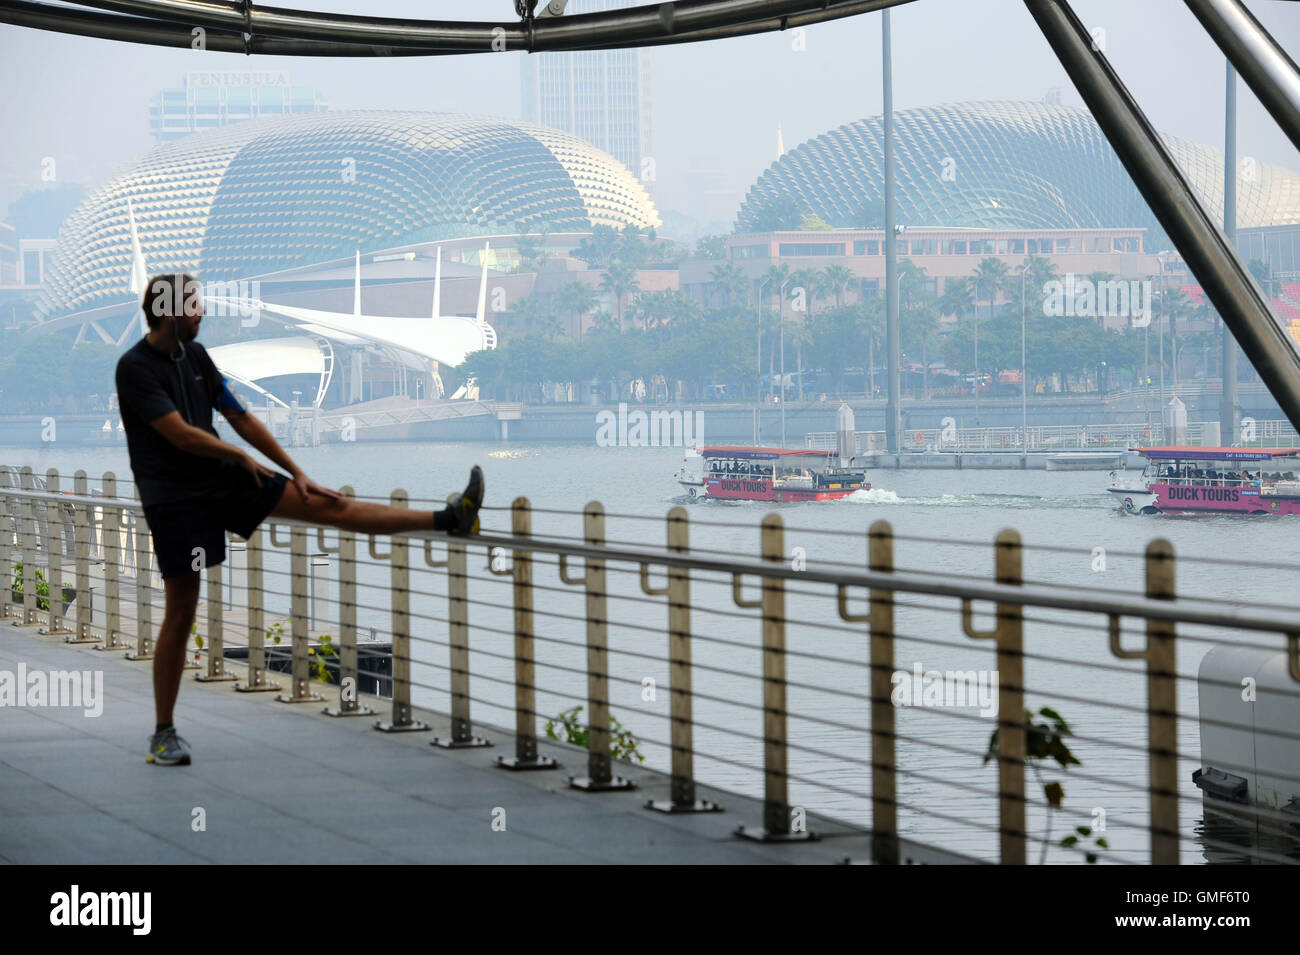 Singapore. 26th Aug, 2016. A man does exercise in Singapore's Marina Bay area, on Aug. 26, 2016. The three-hour - Stock Image